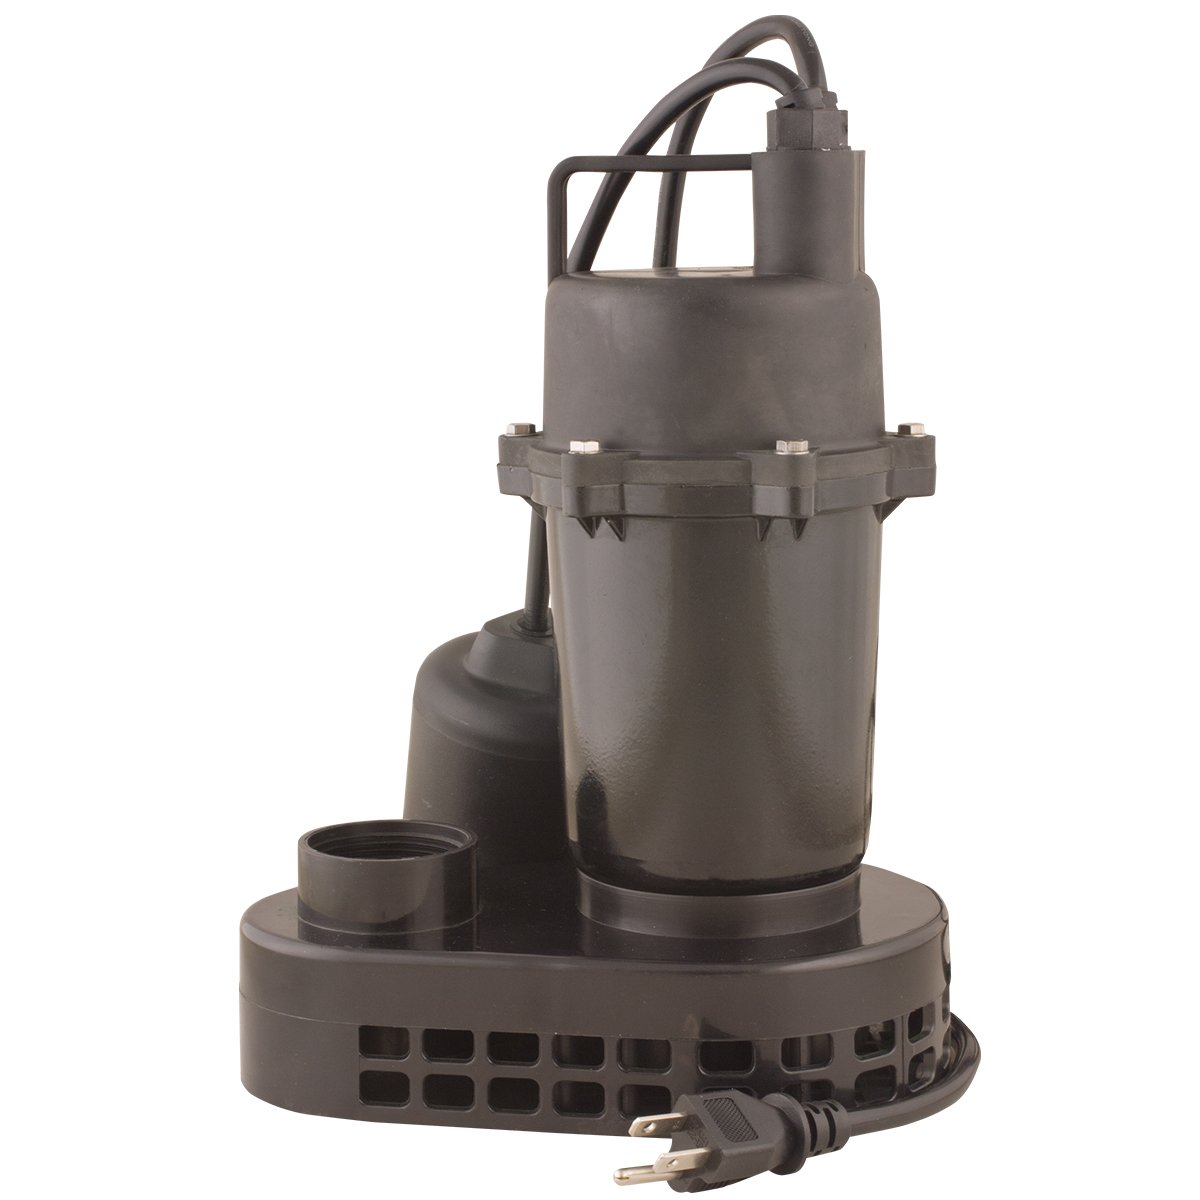 Star 2SPHALC 1/4 HP Submersible Sump Pump – Cast Aluminum with Tethered Float Switch